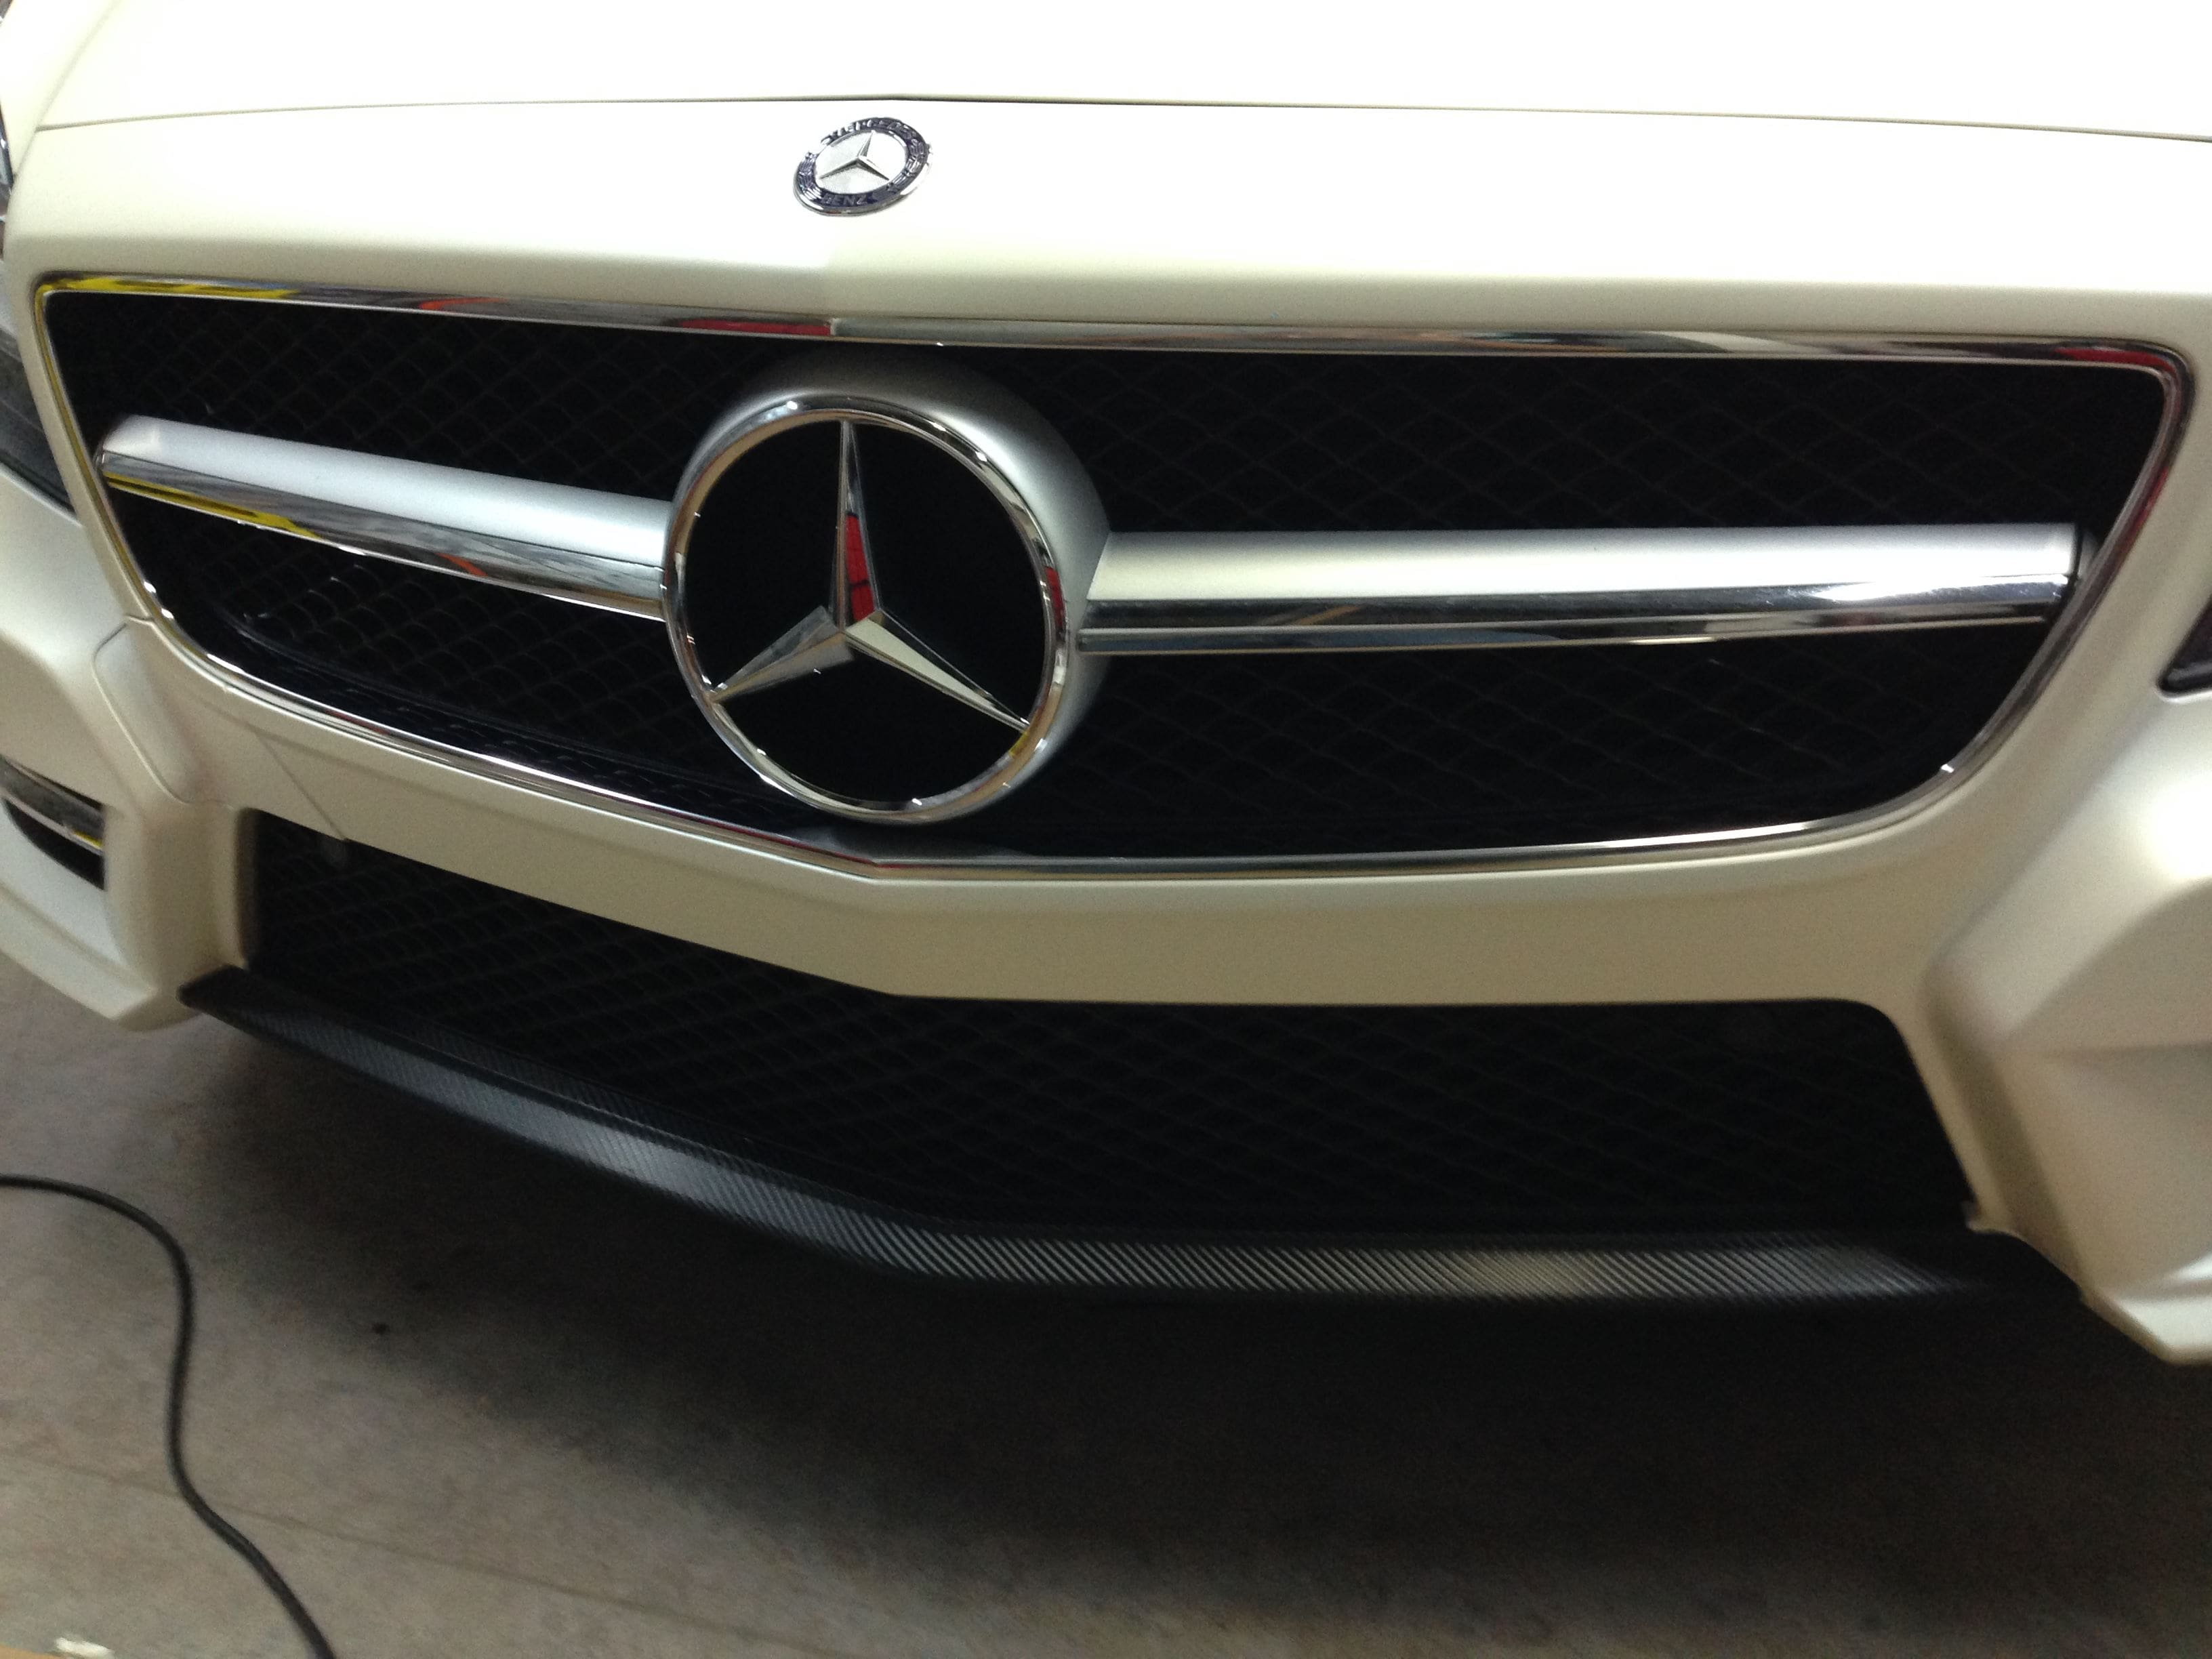 Mercedes CLS met White Satin Pearl Wrap, Carwrapping door Wrapmyride.nu Foto-nr:6196, ©2020